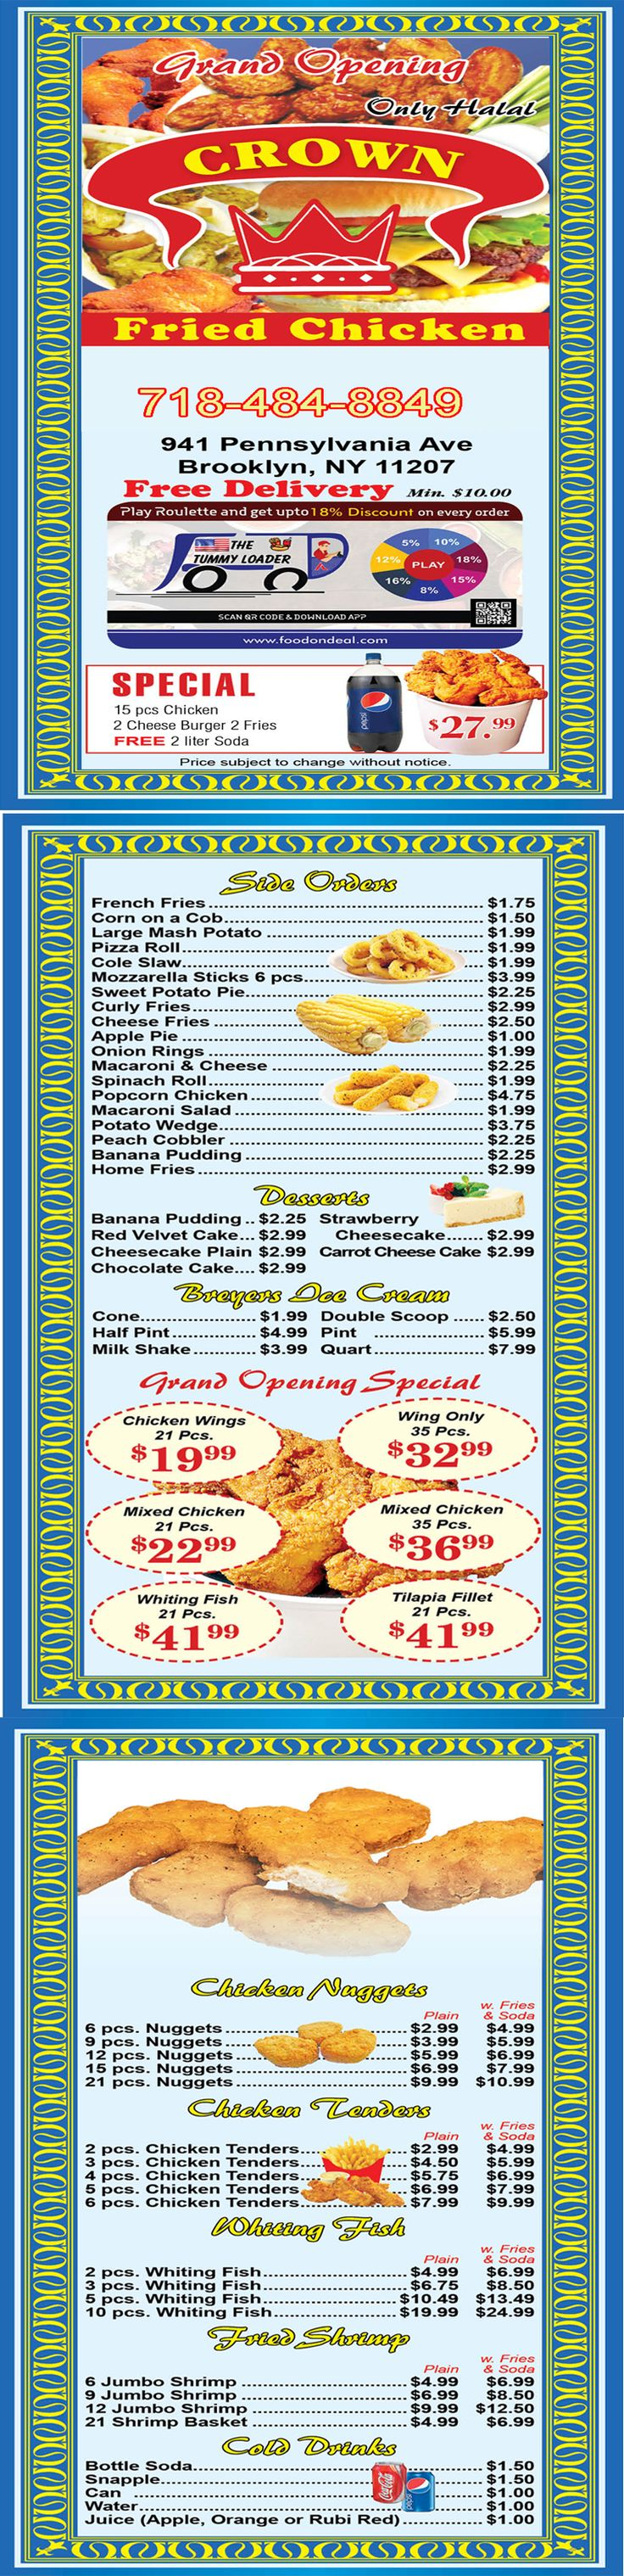 Crown Fried Chicken   941 Pennsylvania Ave  Brooklyn NY 11207   (718) 484-8849  Place your Food from here:- https://www.foodondeal.com/restaurant/gyro--fish-new-york-941-pennsylvania-avenue-brooklyn-new-york-ny-usa/MzY= and enjoy quality Food at your doorstep with discount.   #CrownFriedChicken #CrownFriedChickenG F S #OrderFromCrownFriedChicken #FoodOnDeal